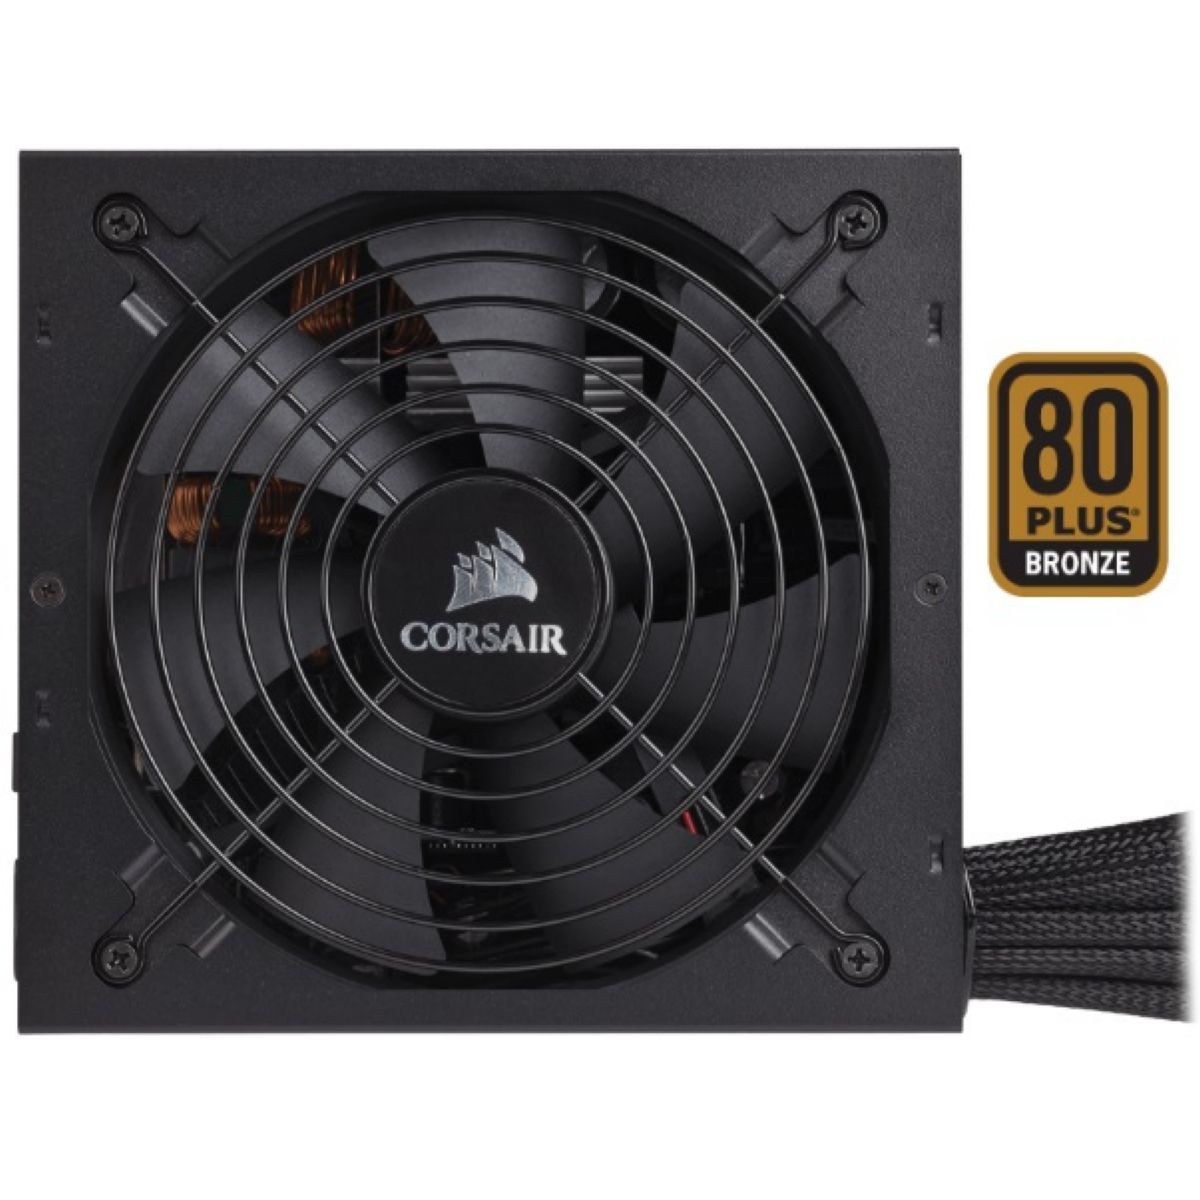 Fuente Corsair Cx750 80 Plus Bronze